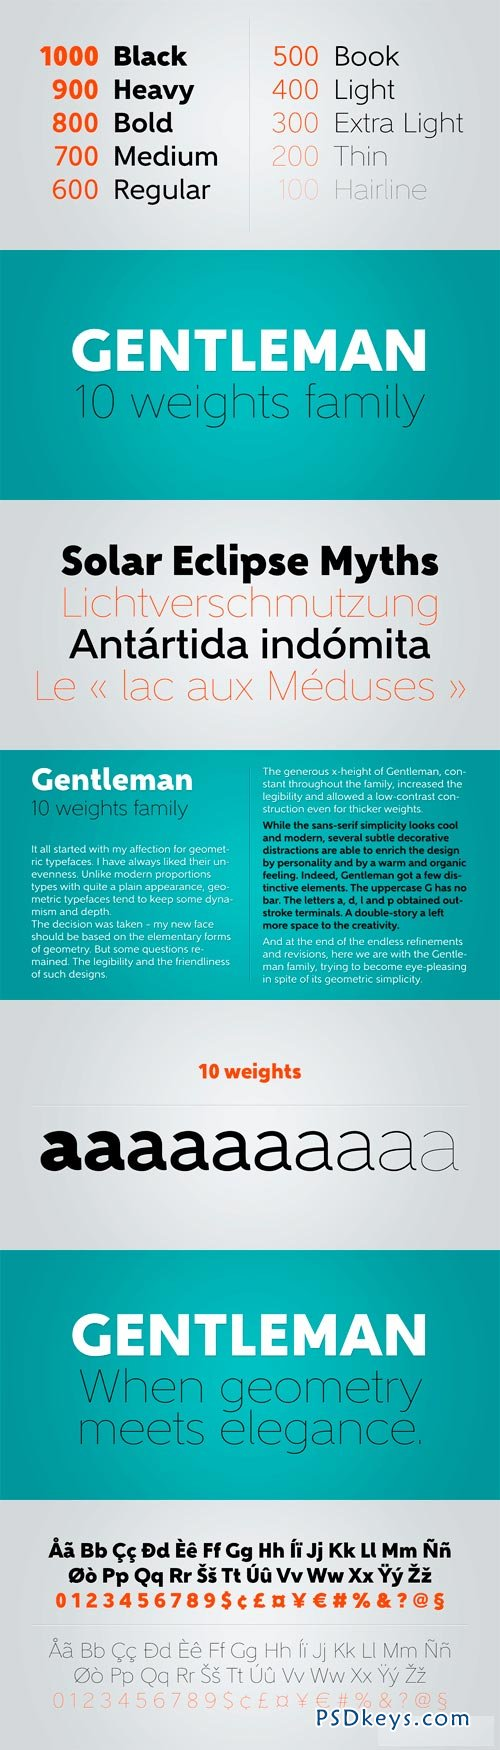 Gentleman Font Family - 10 Fonts for $179